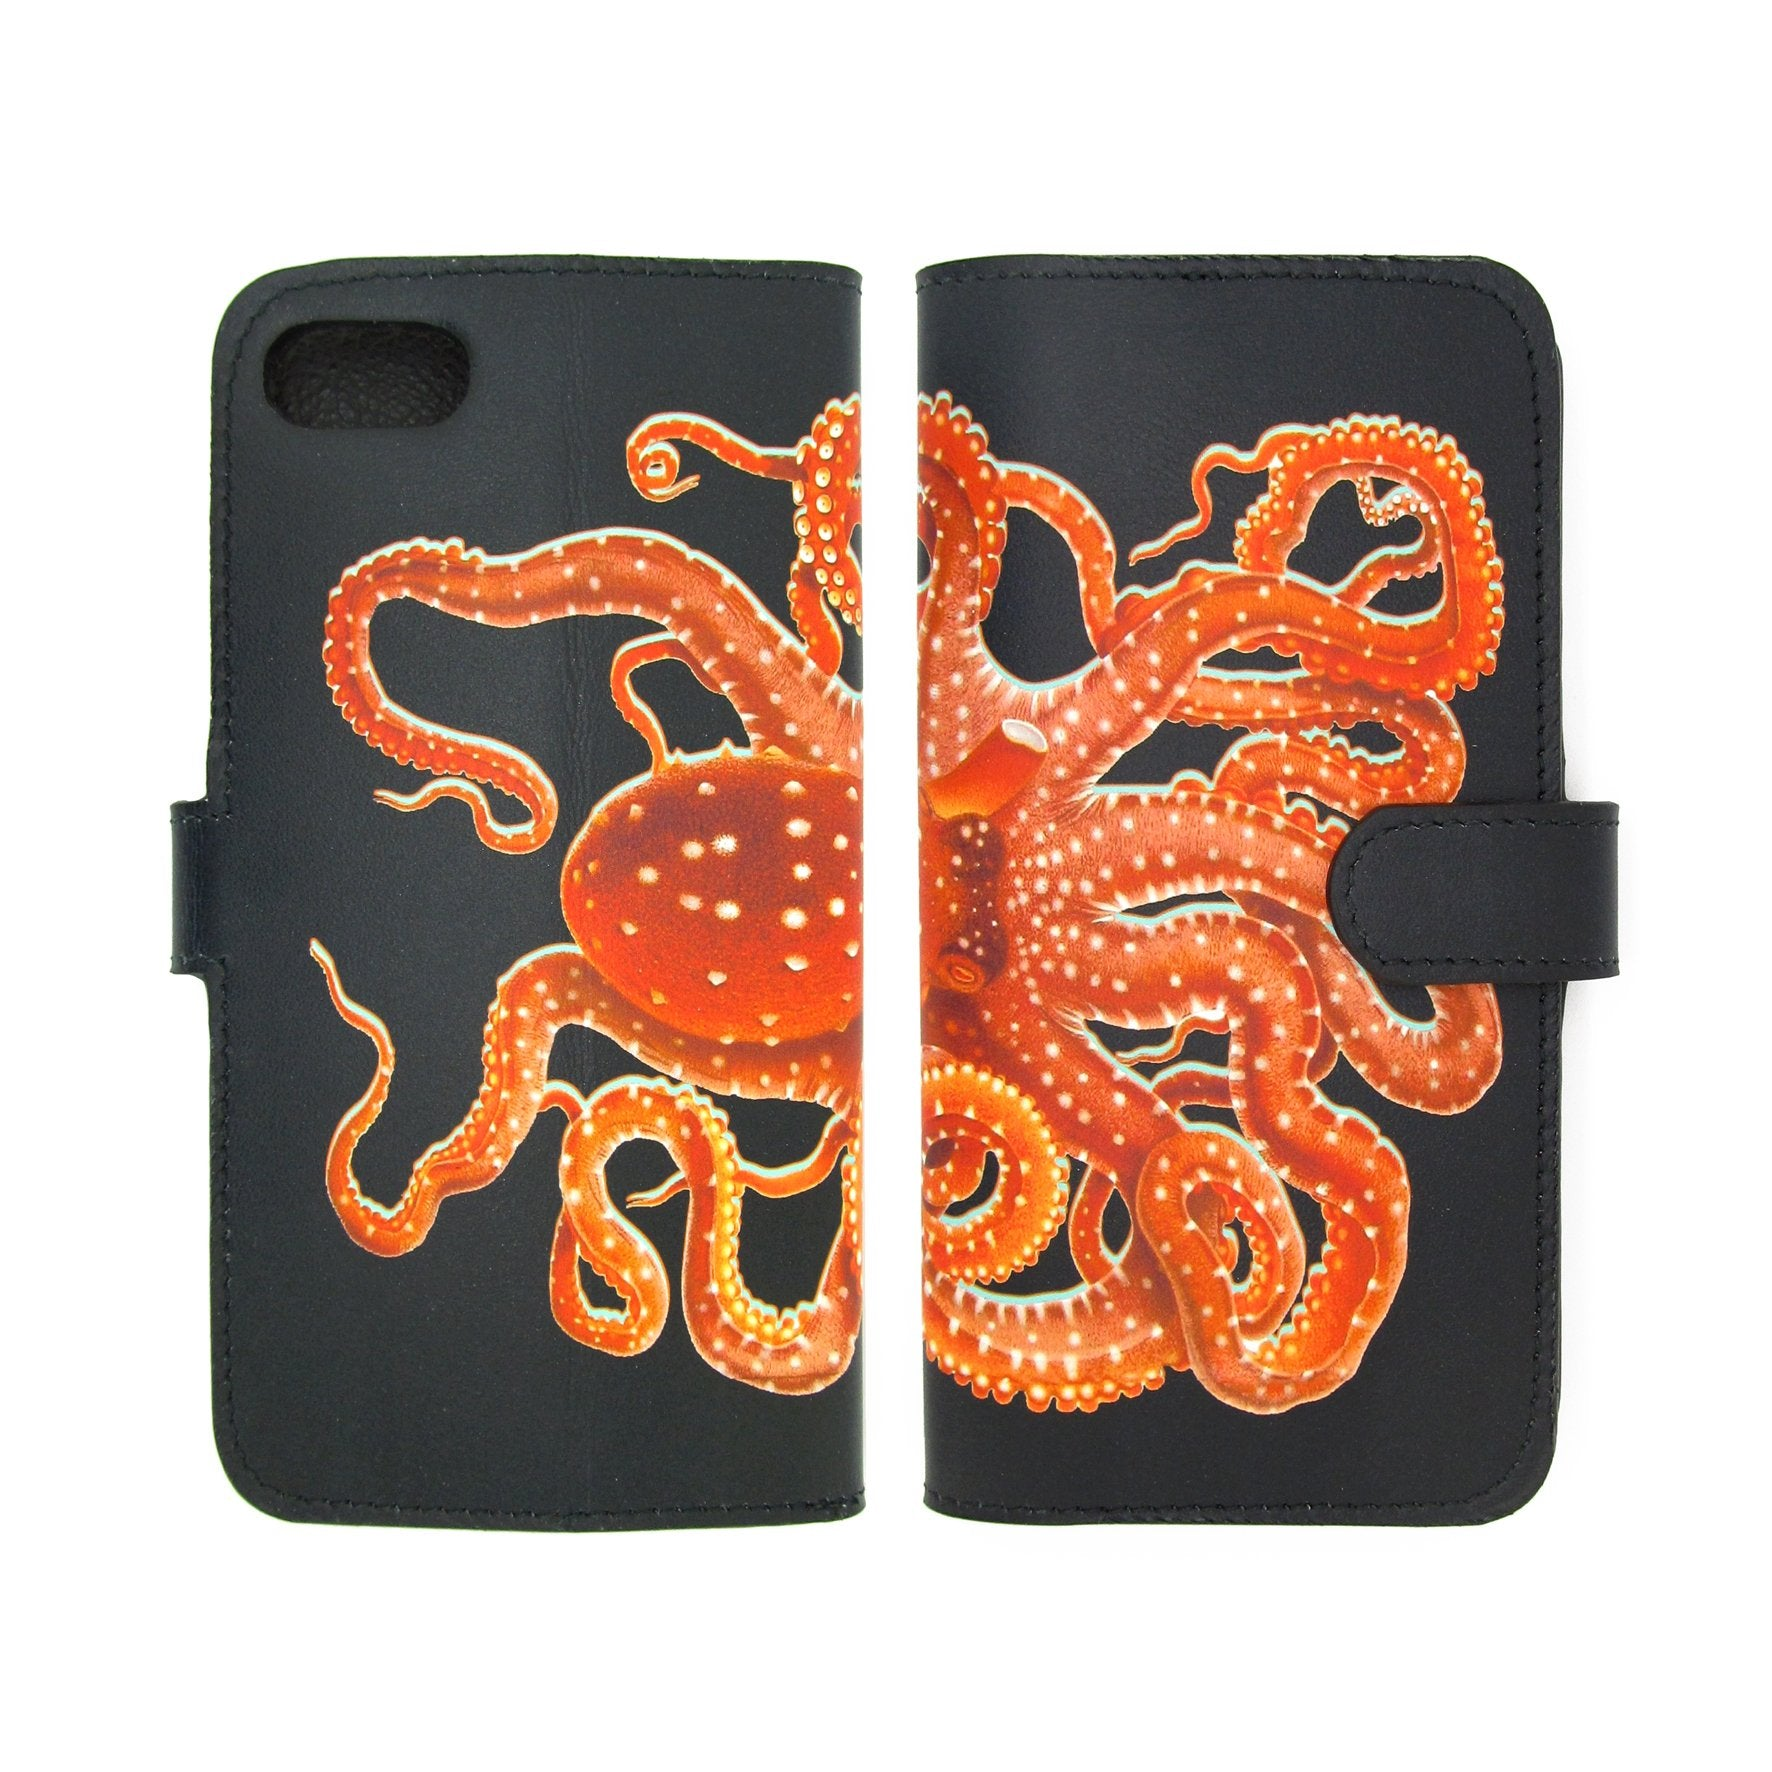 Octopus phone case – sea creature – ocean phone case – bold printed leather phone case - fine leather goods- Cephalopoda phone case design